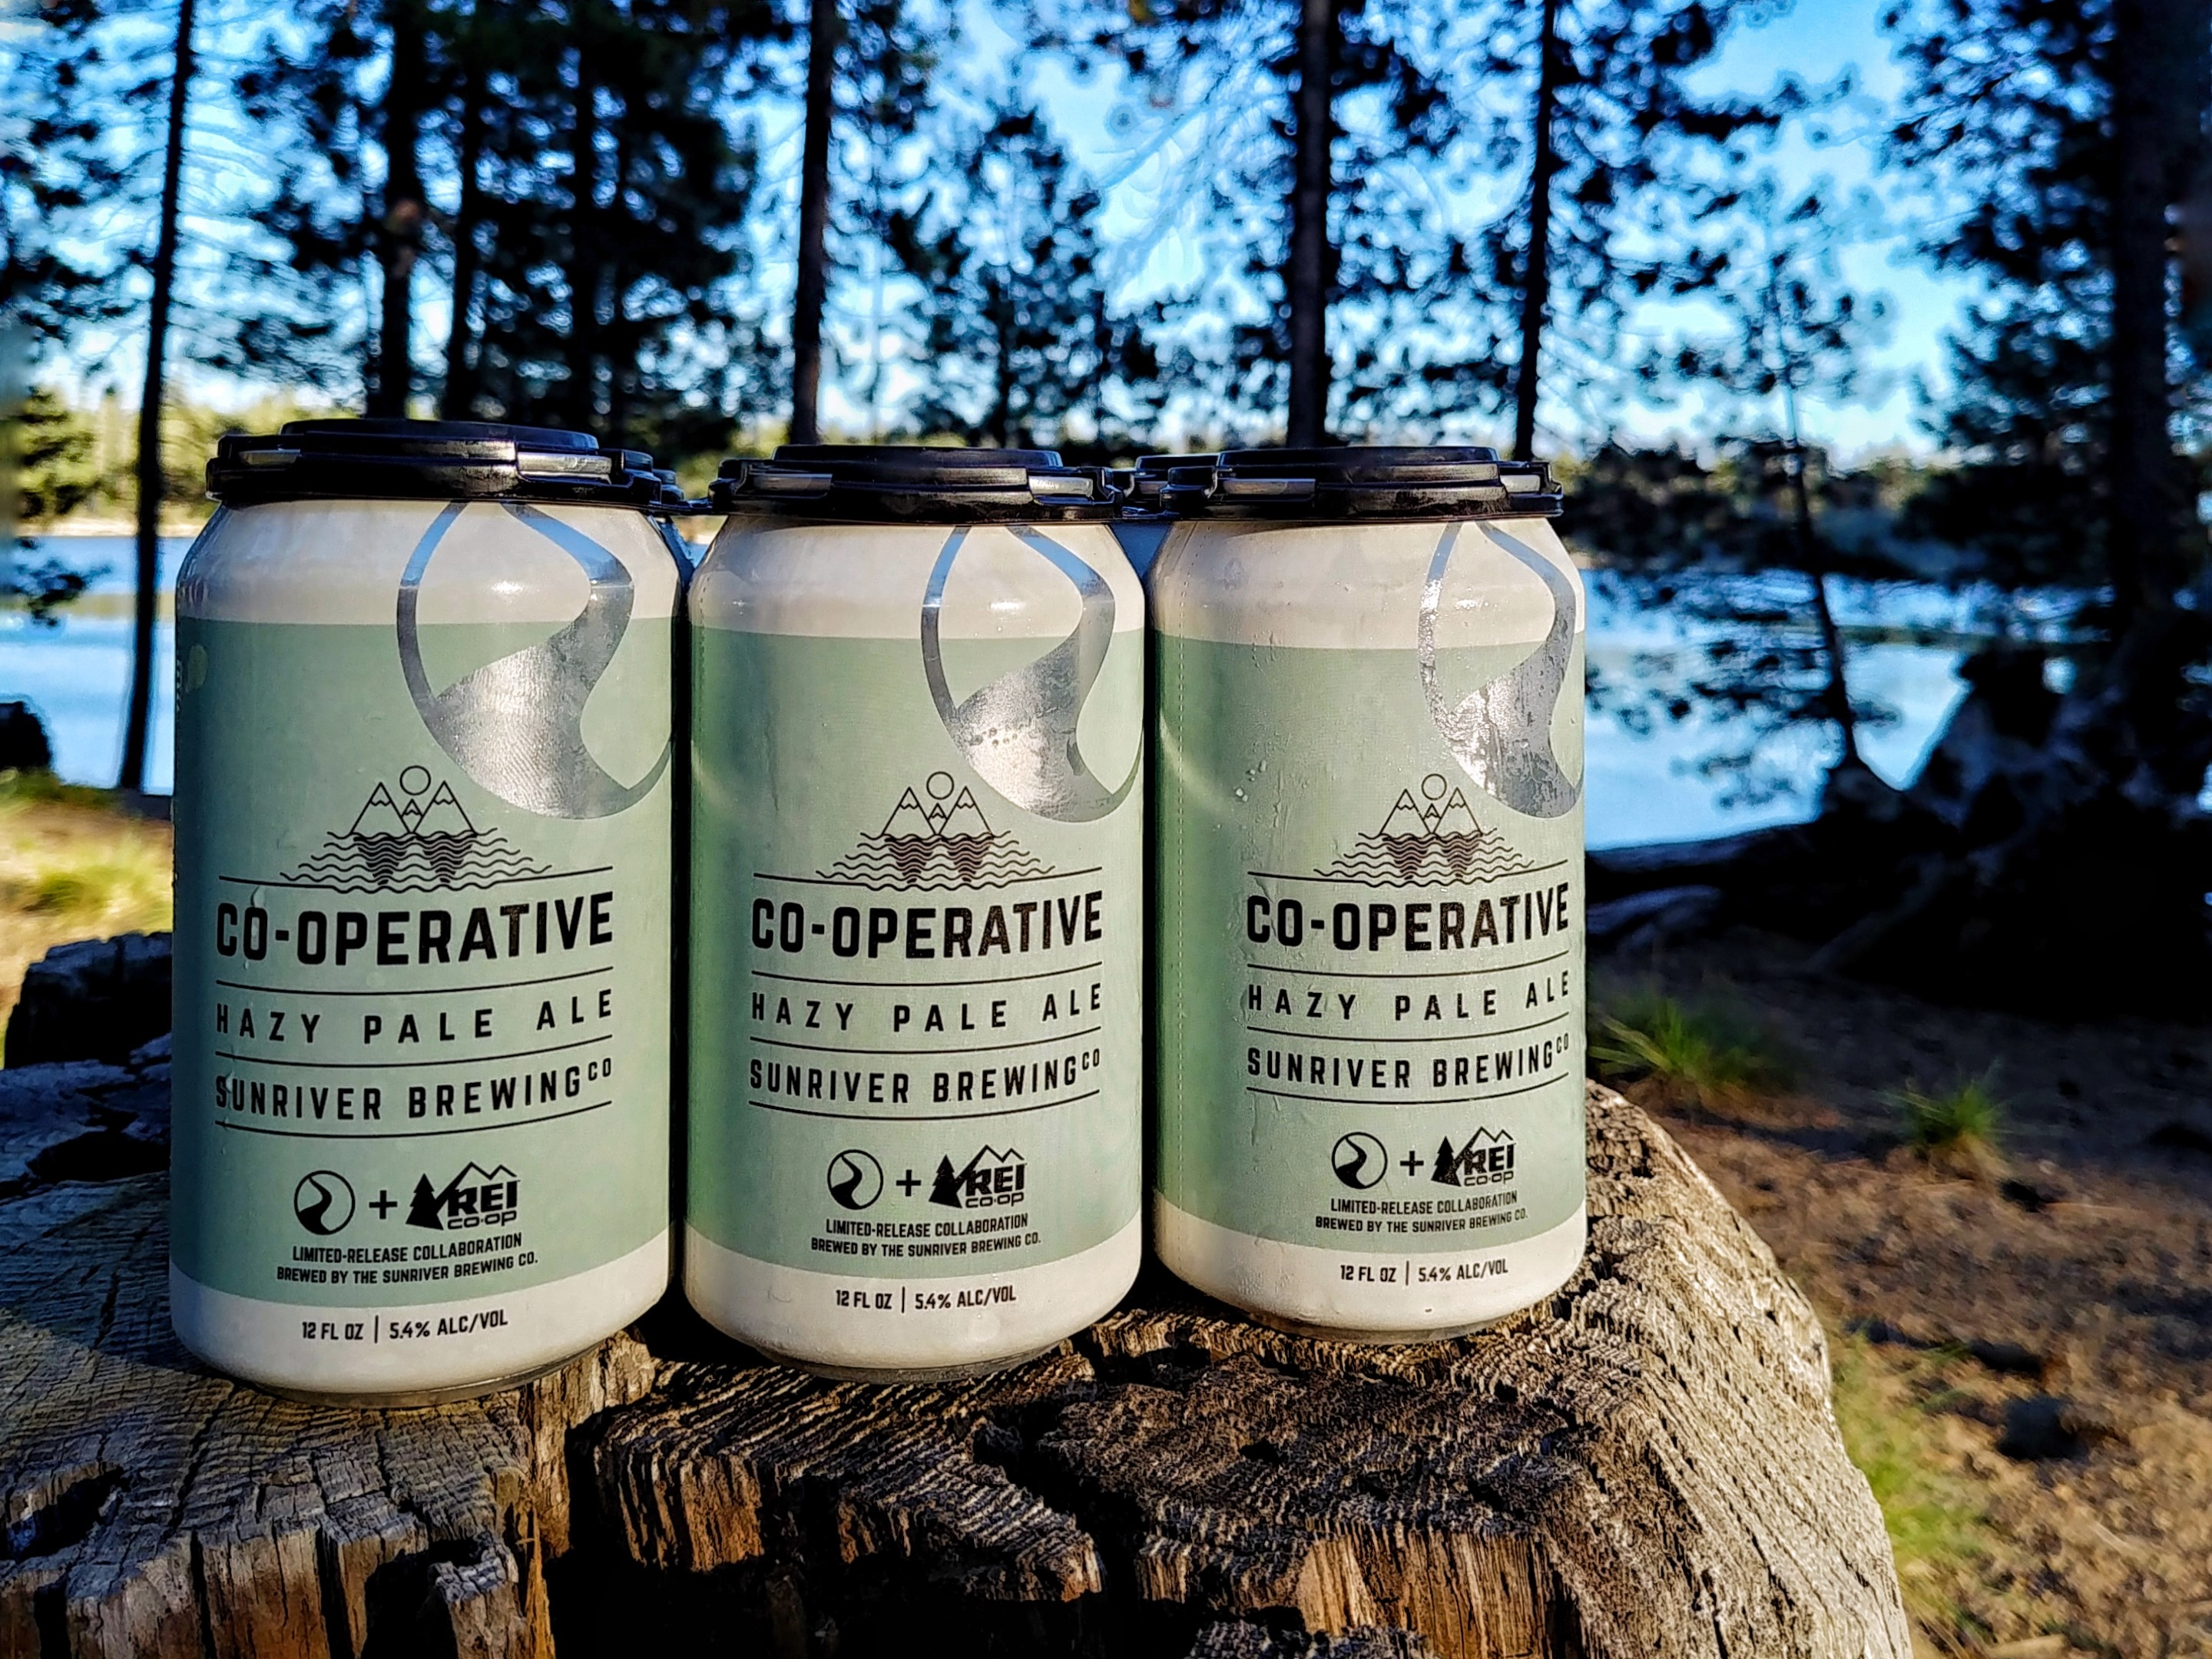 image of Co-Operative Hazy Pale Ale courtesy of REI and Sunriver Brewing